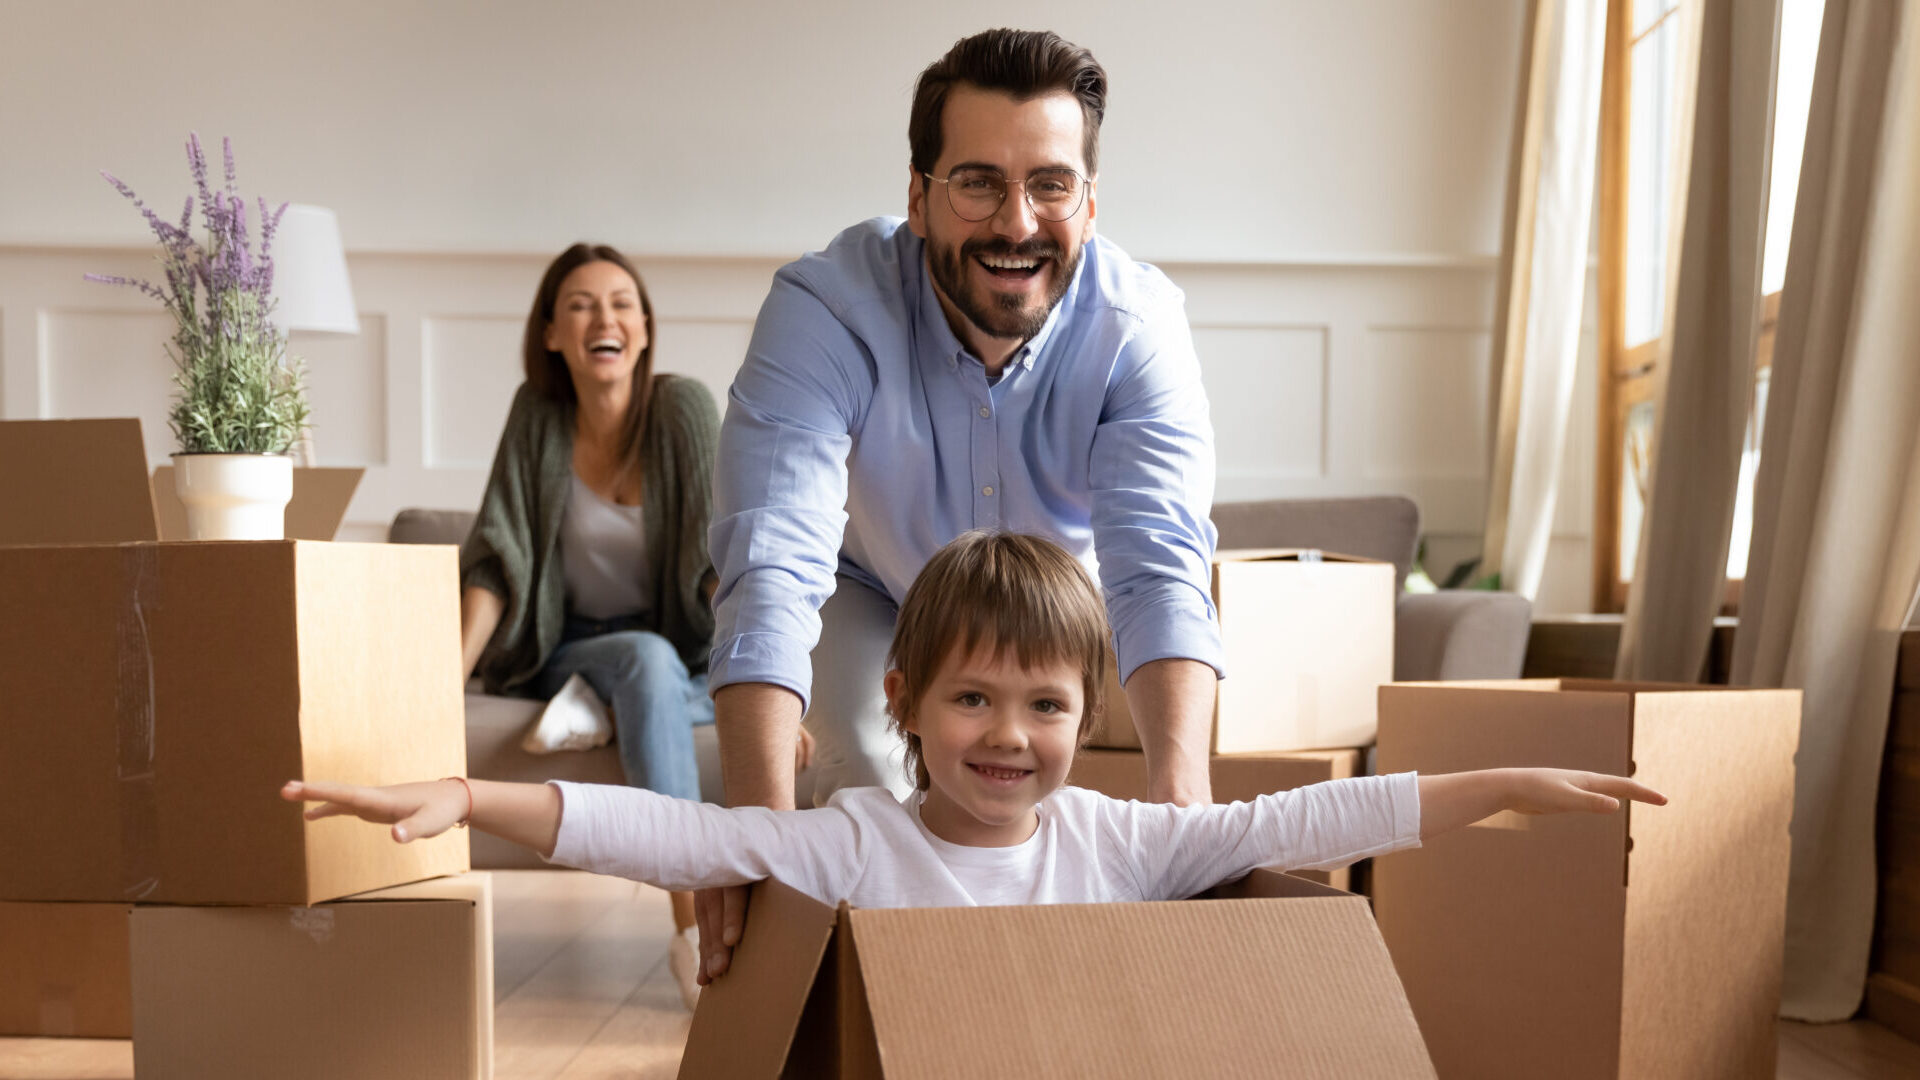 child in box being pushed by dad